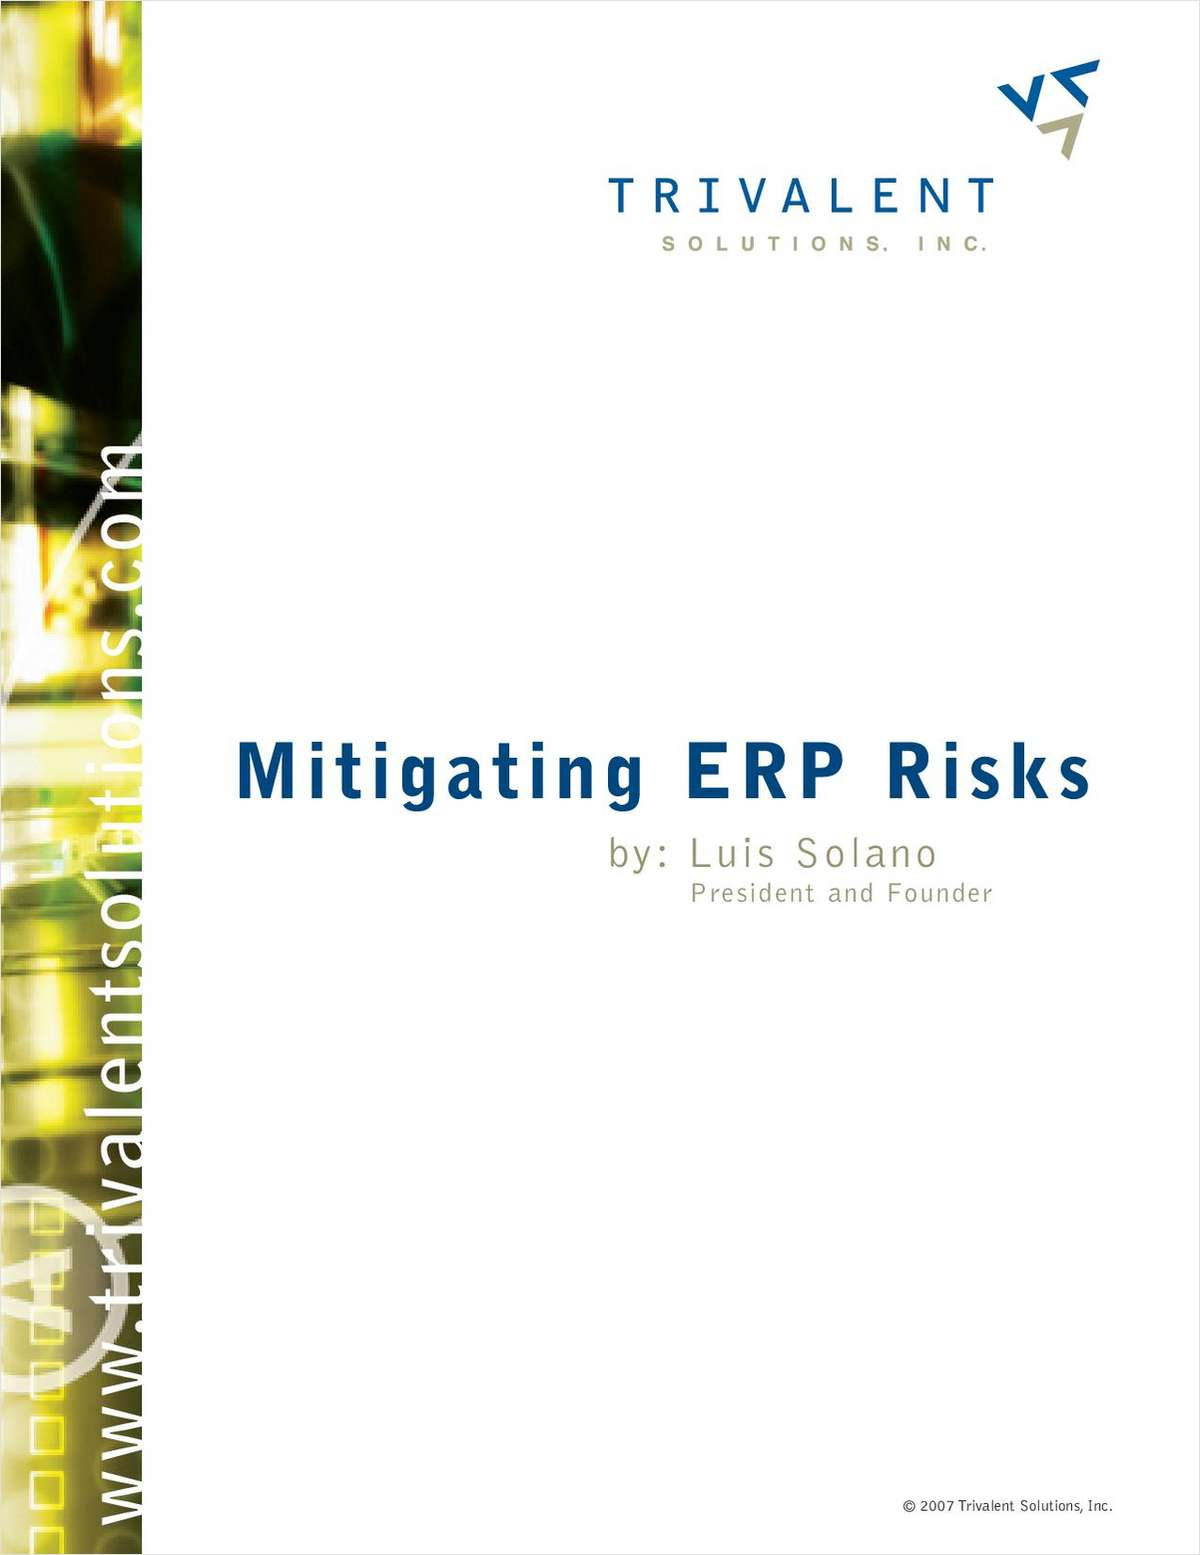 Mitigating ERP Risks